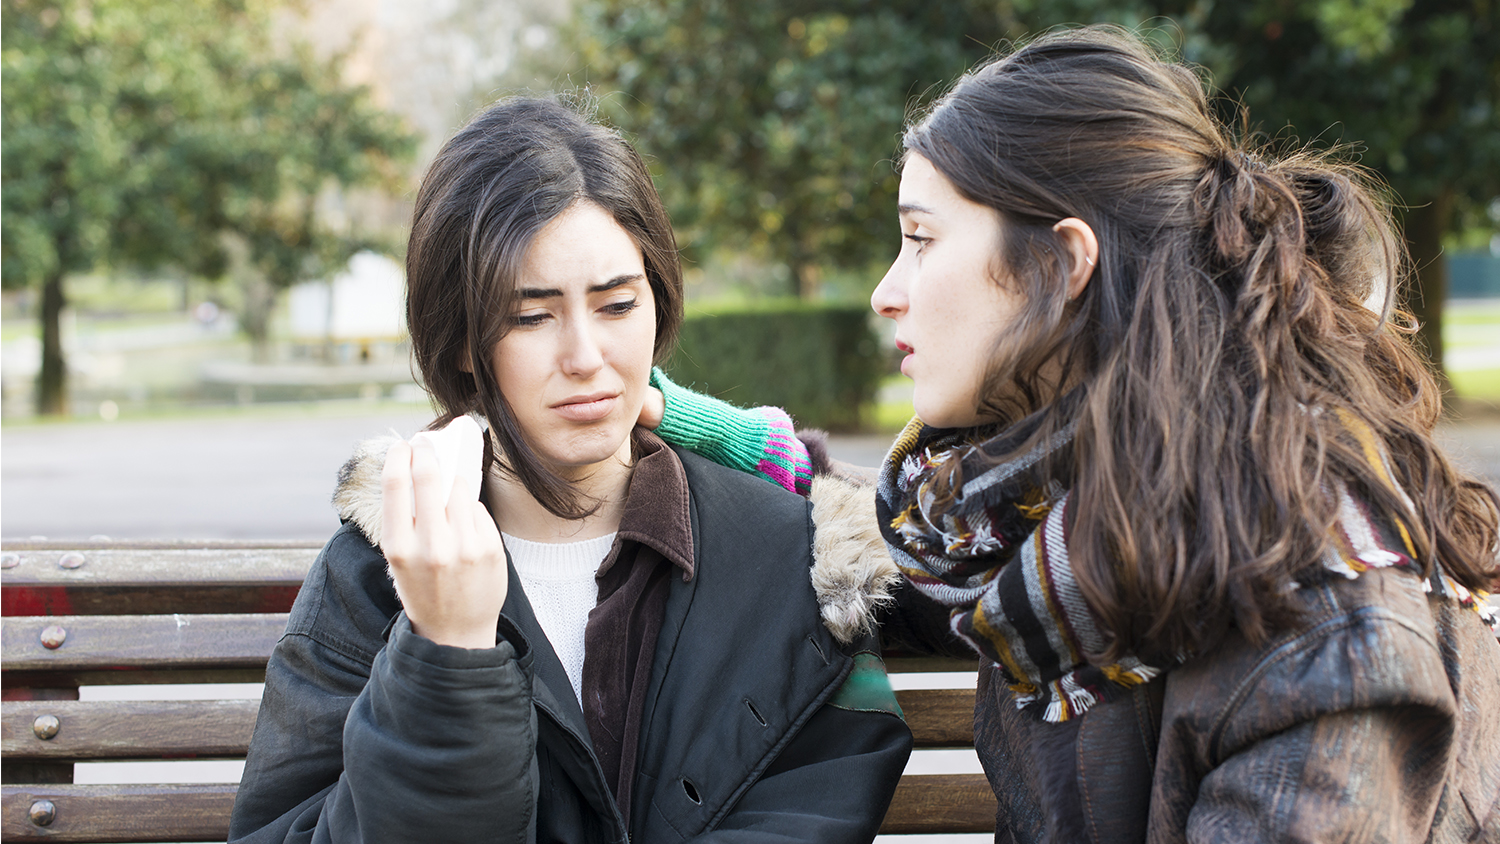 Two young women in discussion on a bench